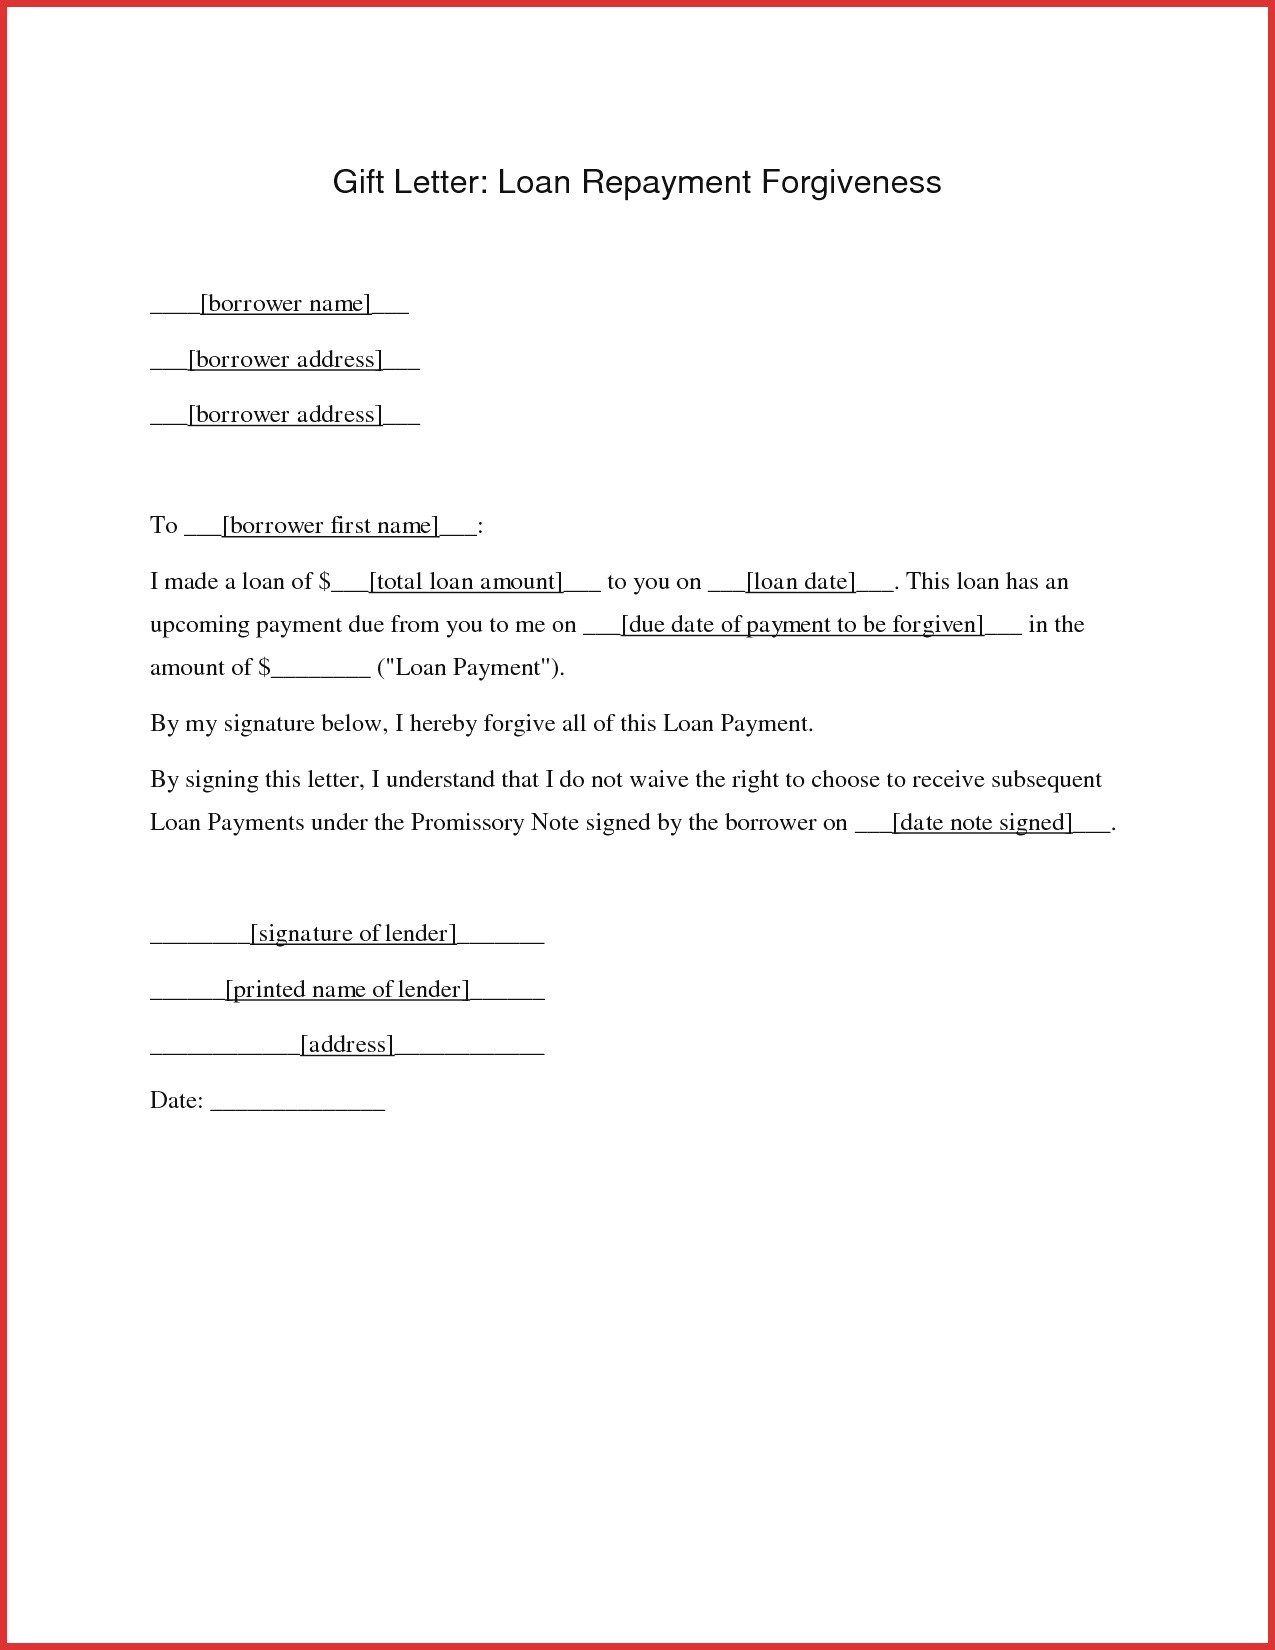 Auto Loan Payoff Letter Template - Letter for Loan Valid Save Best New Refrence Fresh Inspirationa New